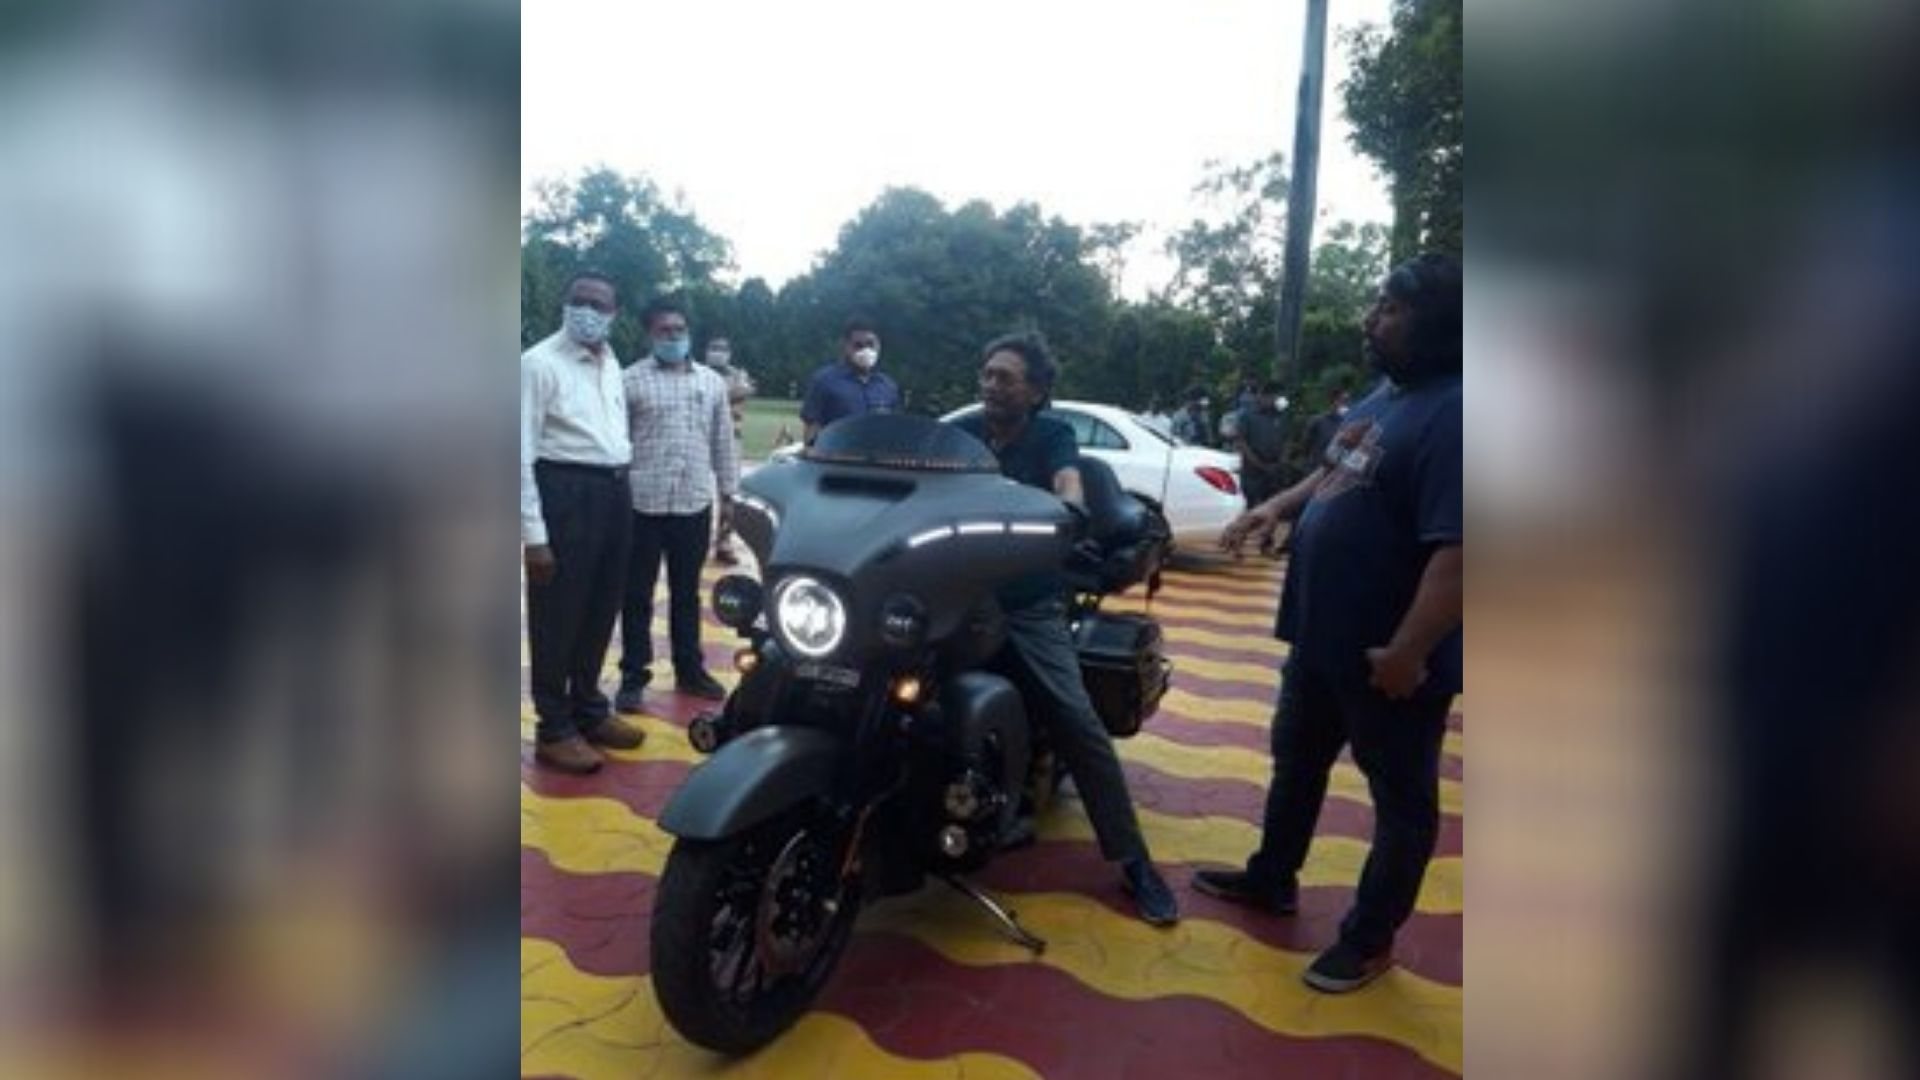 Rider of Justice: Twitter Is Thrilled to See CJI Bobde on a Harley